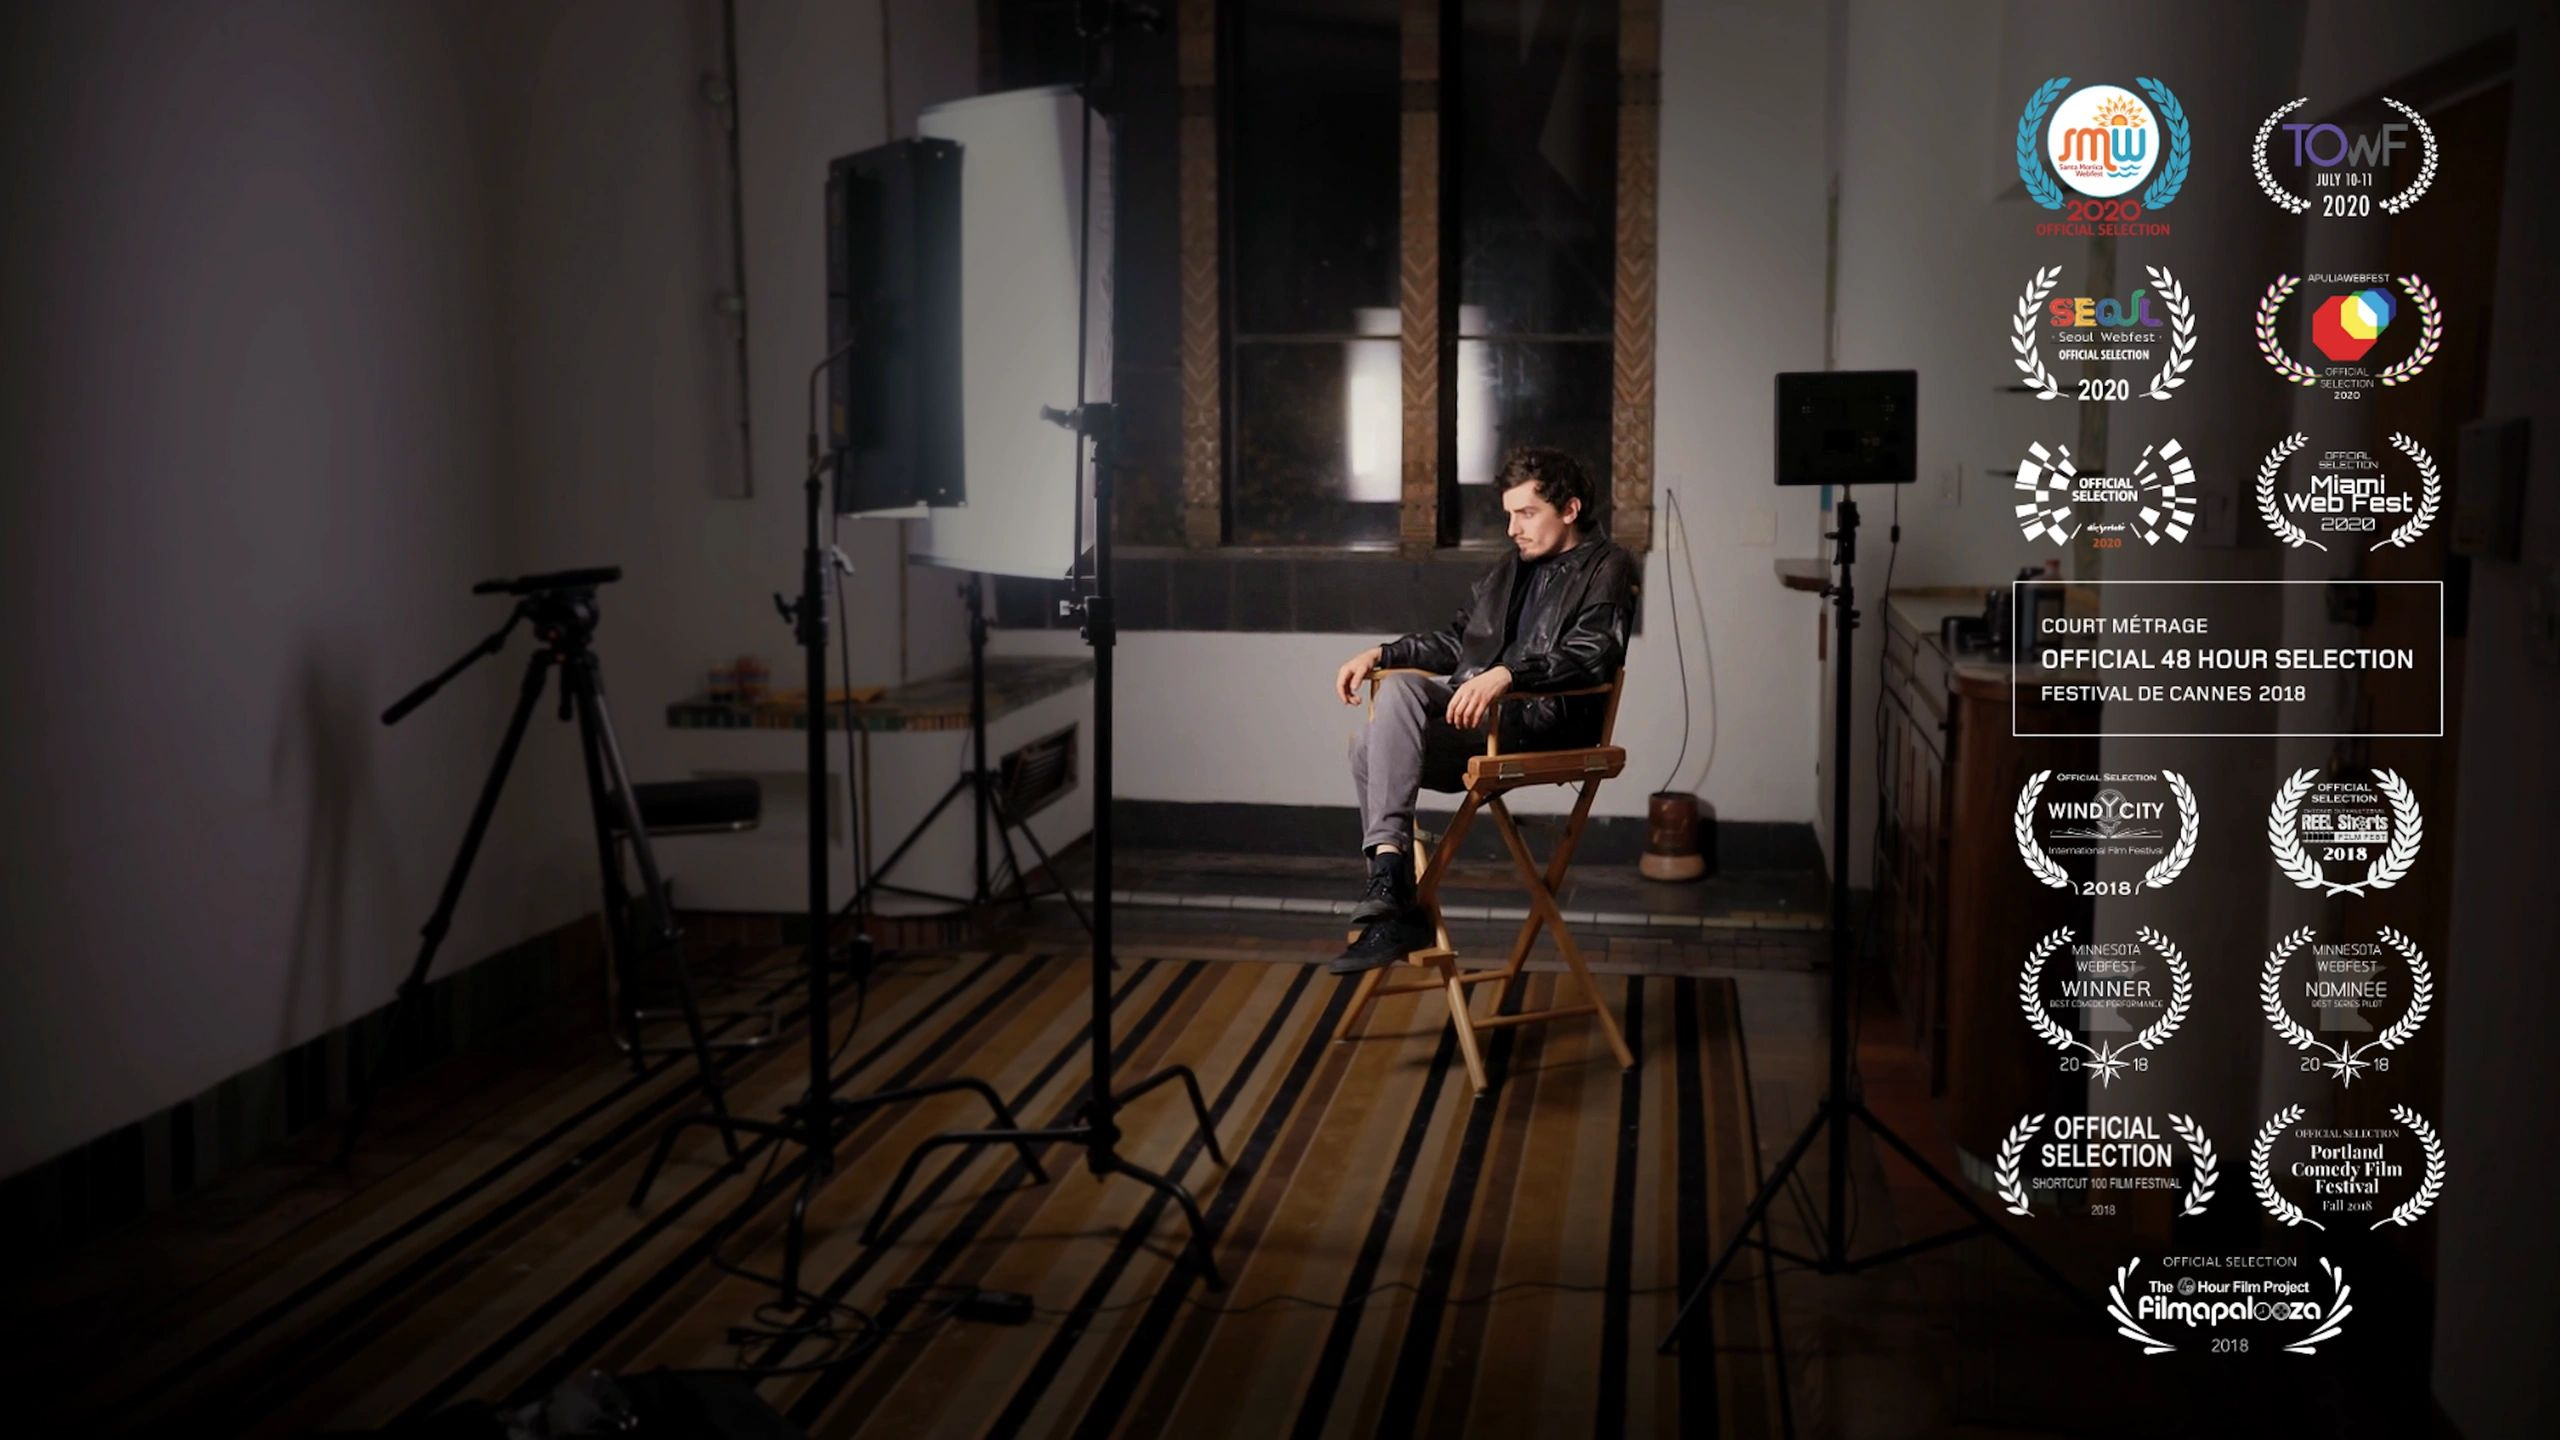 Filmmaker sits in director's chair on set BTS interview, patiently awaits his fame & fortune.